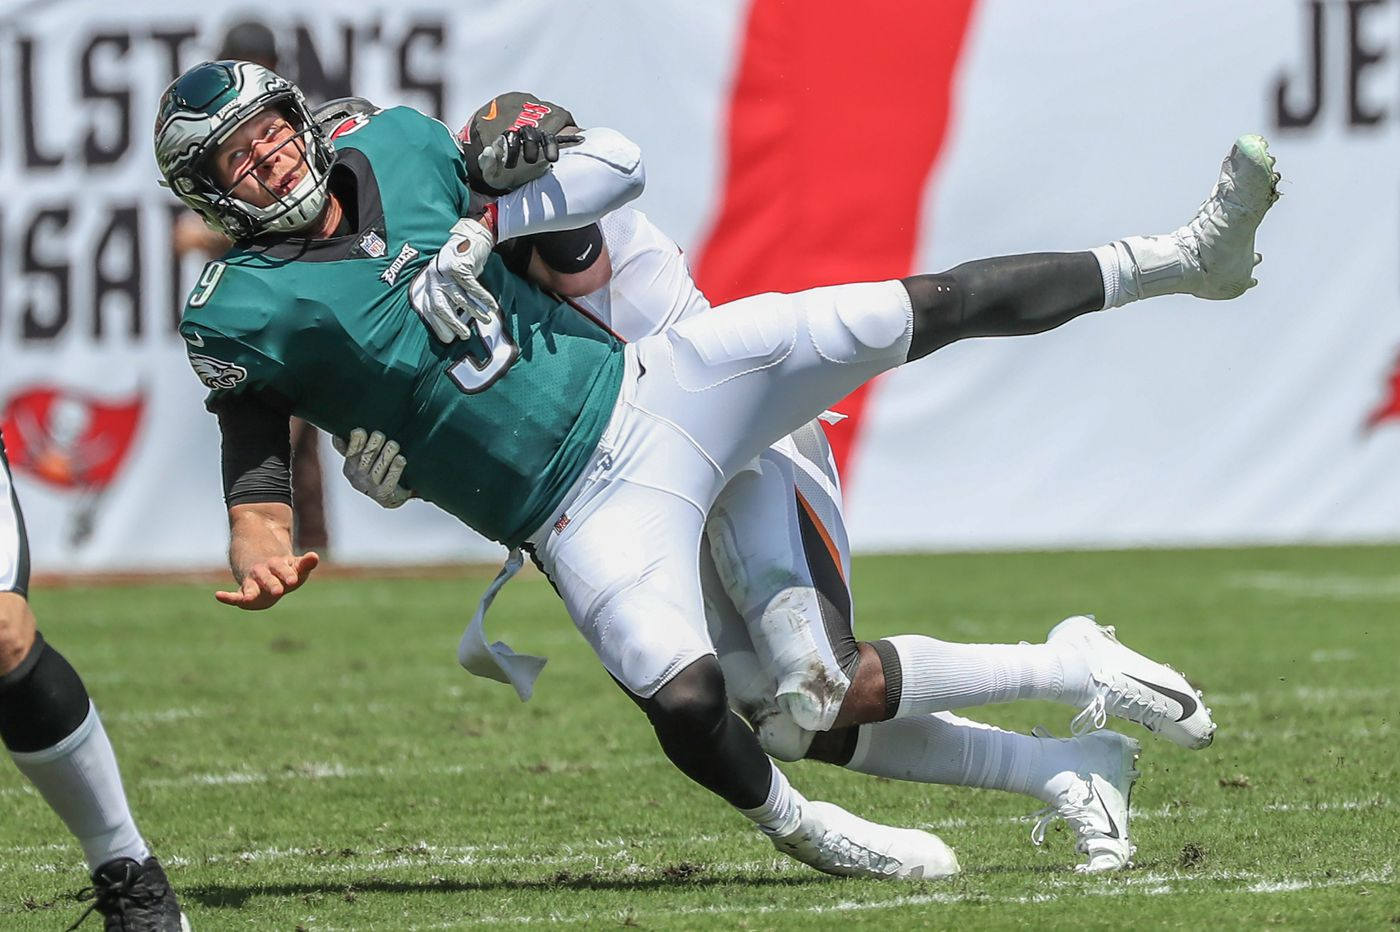 Buccaneers 27, Eagles 21: Ryan Fitzpatrick, DeSean Jackson use big plays to haunt team marred by injuries